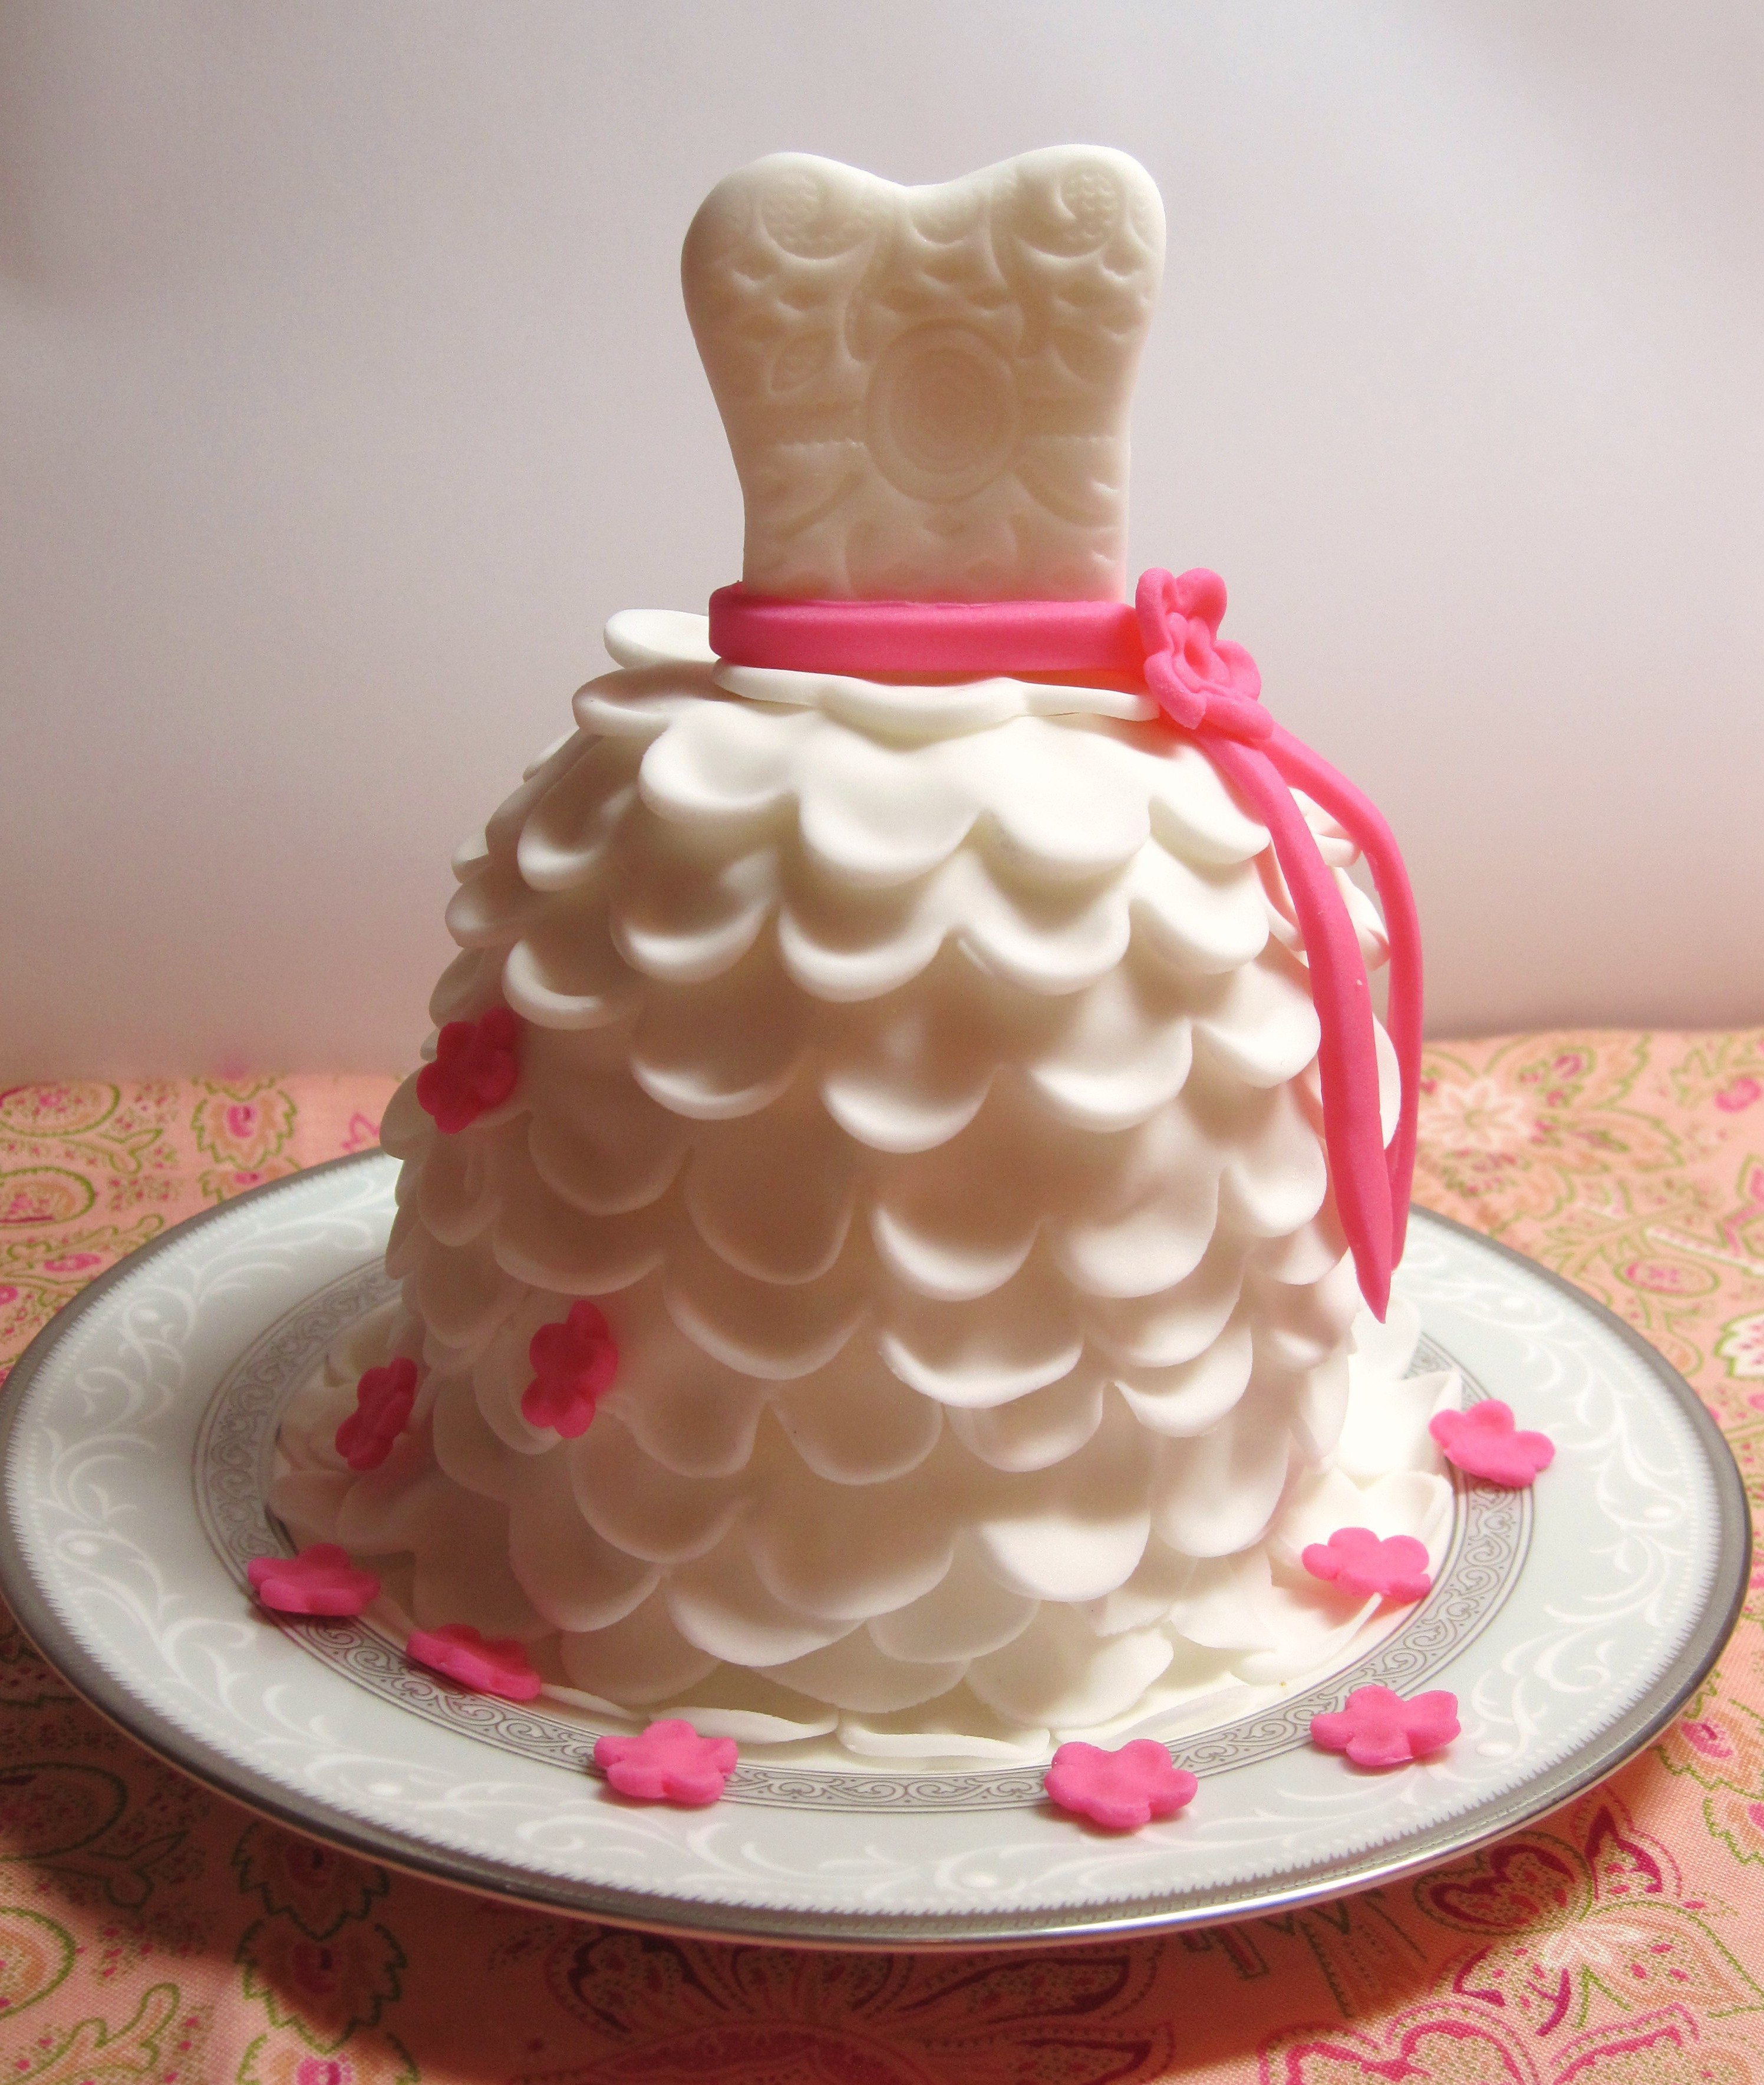 Wedding Gown Cakes: {DIY} How To Make Beautiful Wedding Dress Cupcakes With